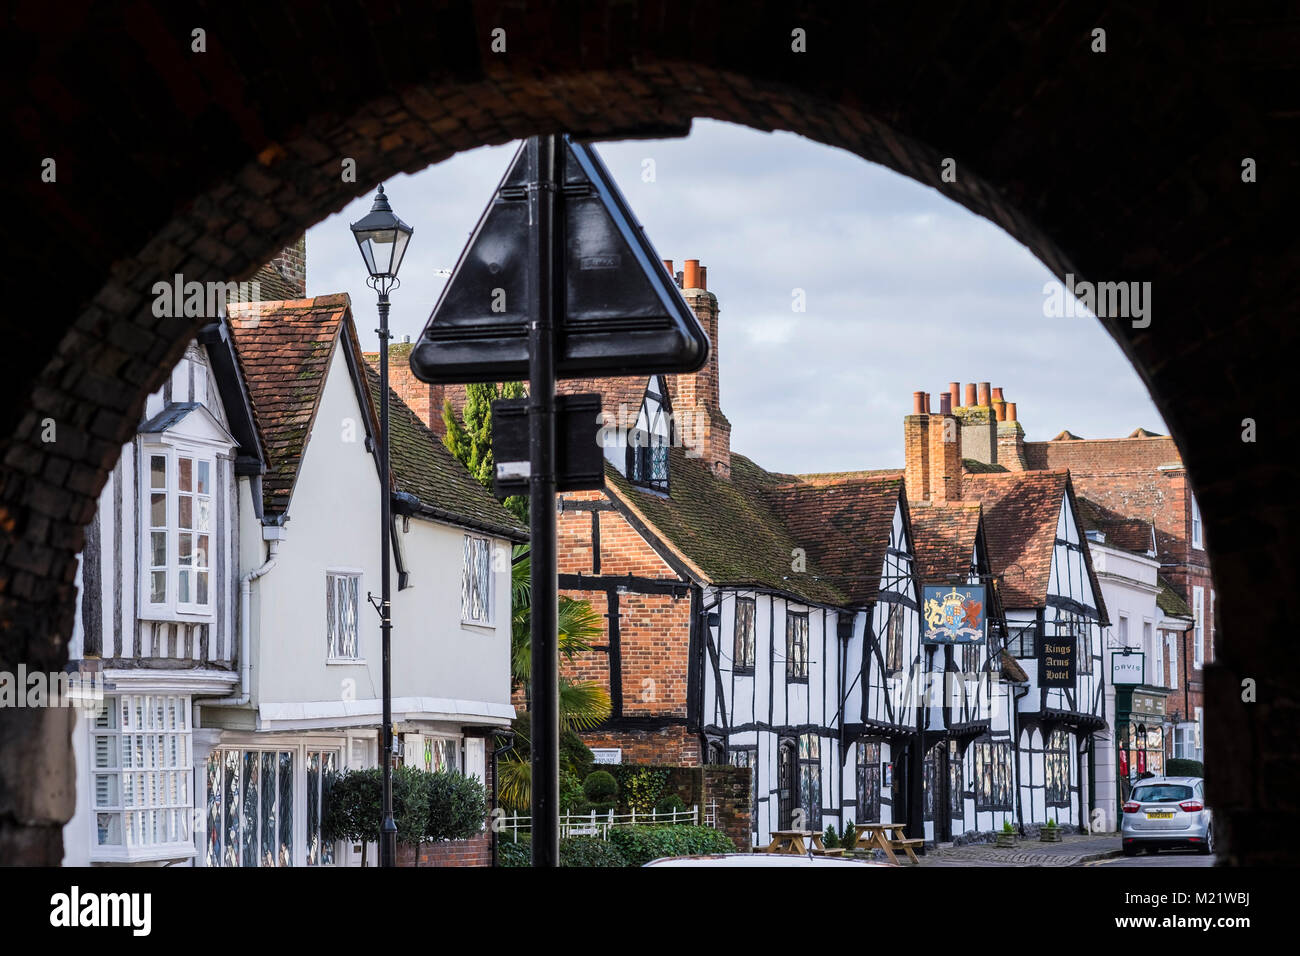 Amersham Old Town, Chiltern Valley, Buckinghamshire, England, U.K. Stock Photo